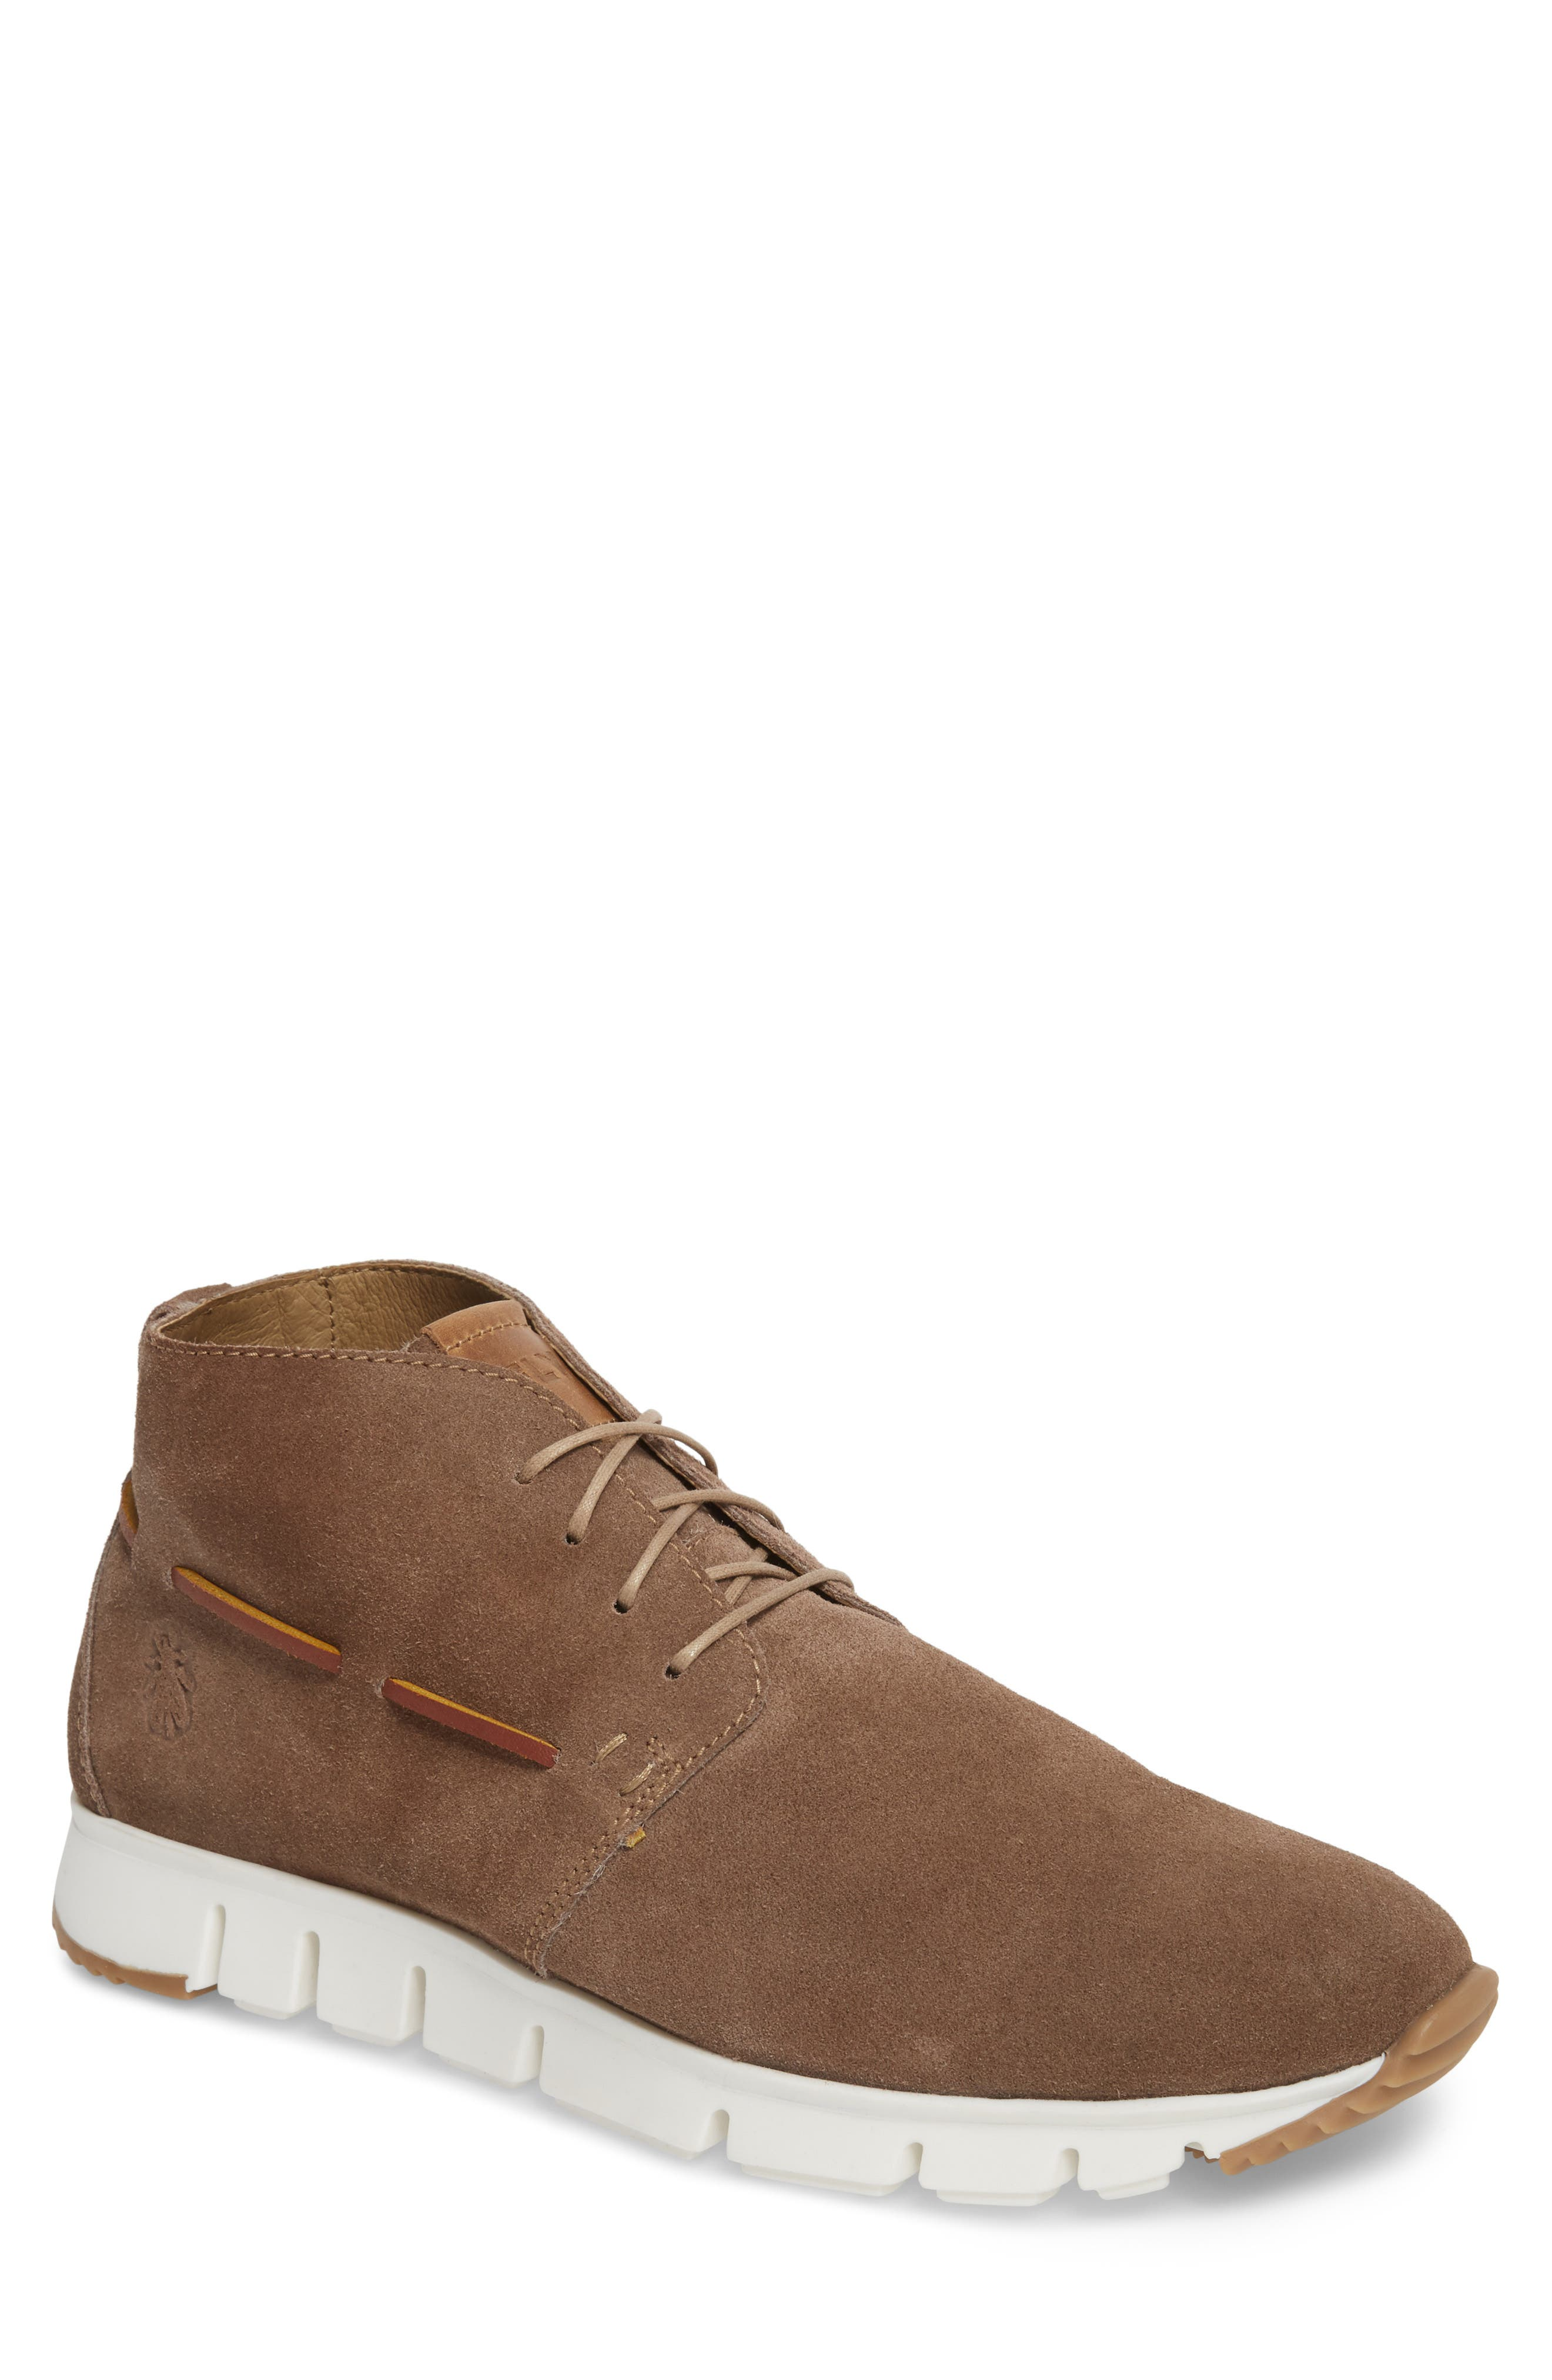 Sky High Top Sneaker,                             Main thumbnail 1, color,                             TAUPE SUEDE